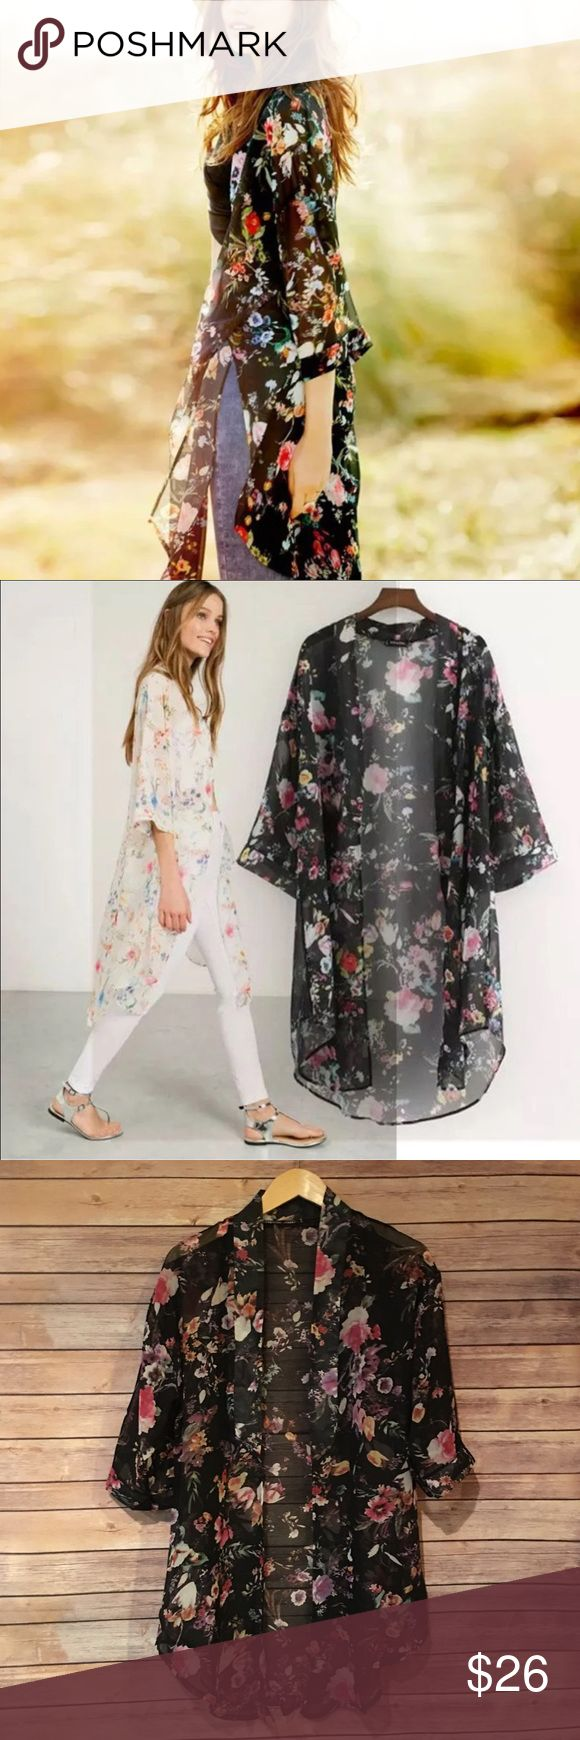 "Floral Chiffon Cardigan Kimono Floral Chiffon cardigan Kimono. Made of 100% polyester. Available in small, medium and large. Fits true to size. Length approx 35"". Bchic Tops"